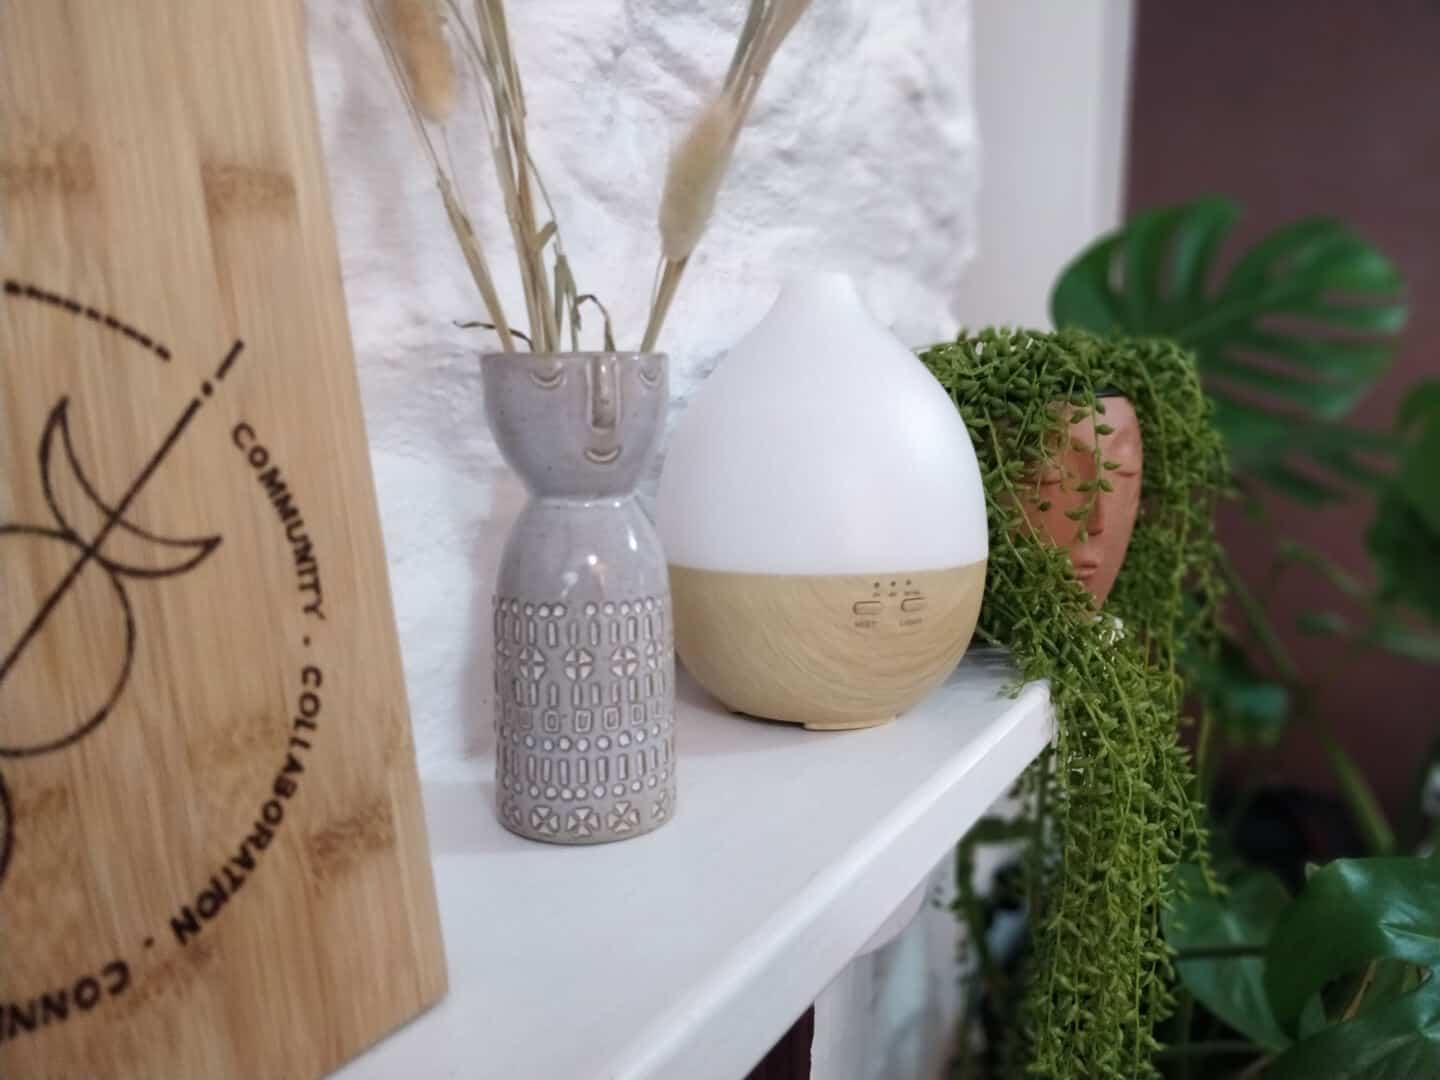 Smellacloud aroma diffuser on a mantle with plants and bunny tails in abstract faces plant pots.